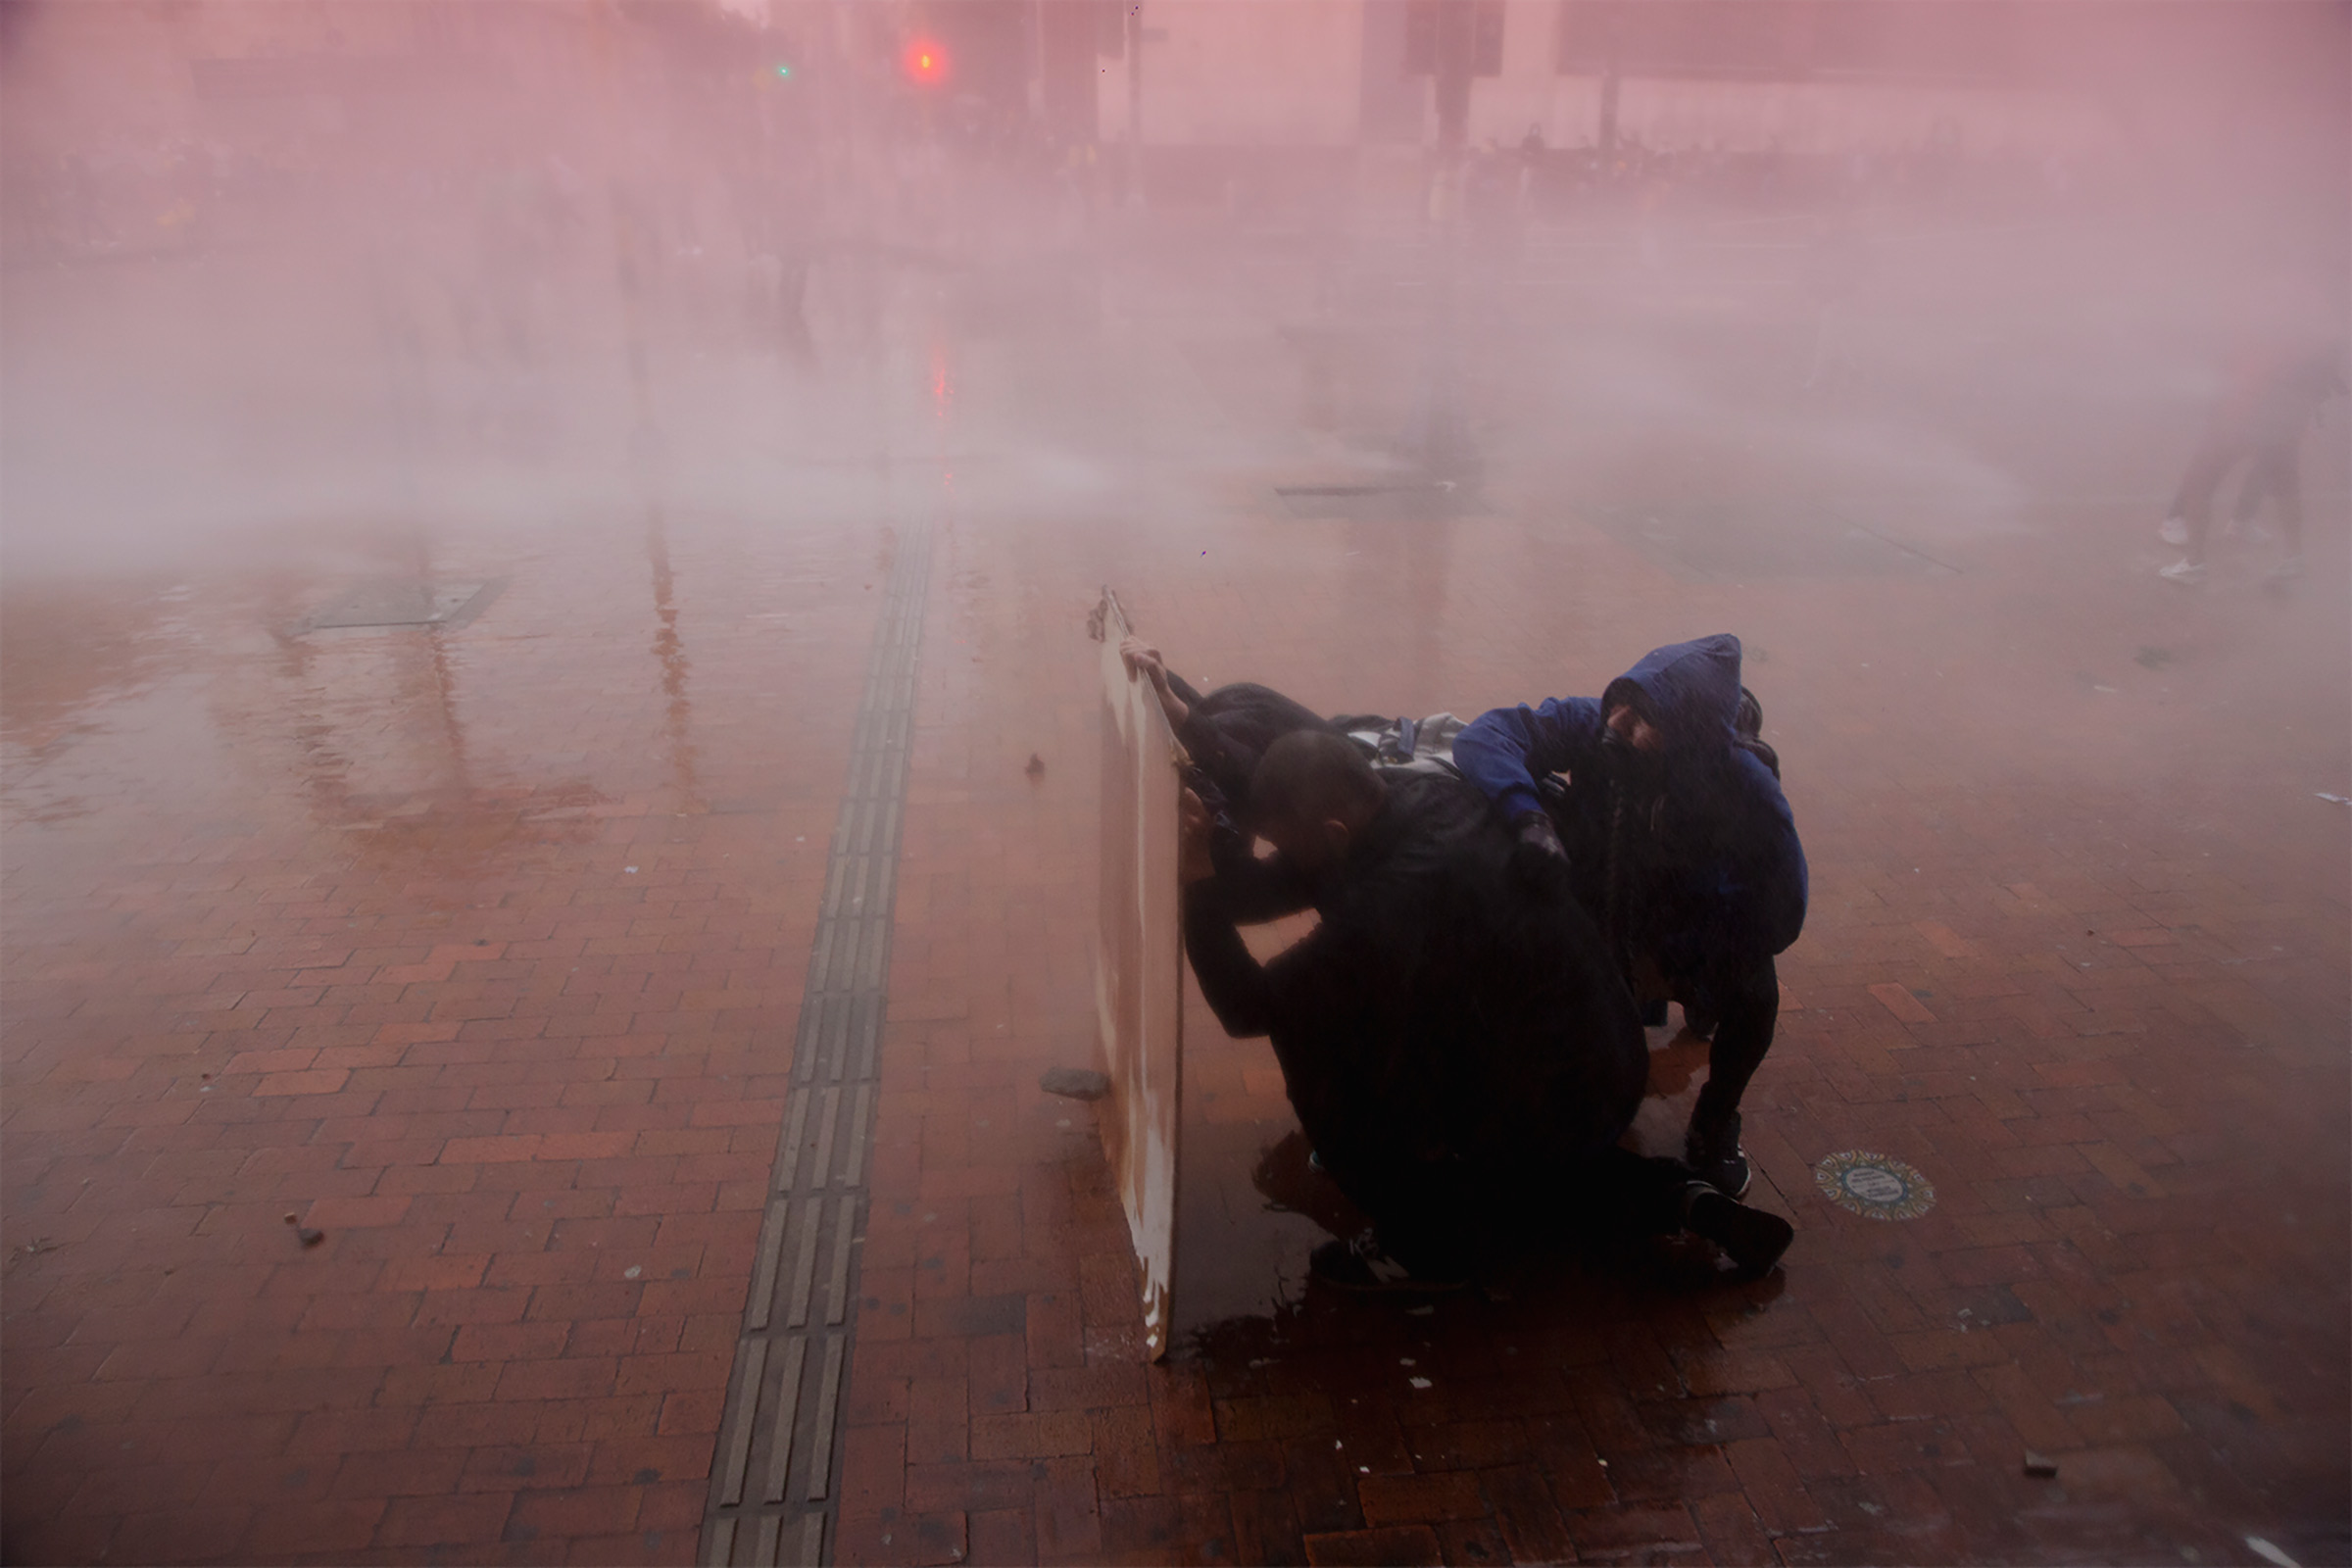 Riot police vehicles fire a water cannon to disperse the protesters in Bogotá on May 5.